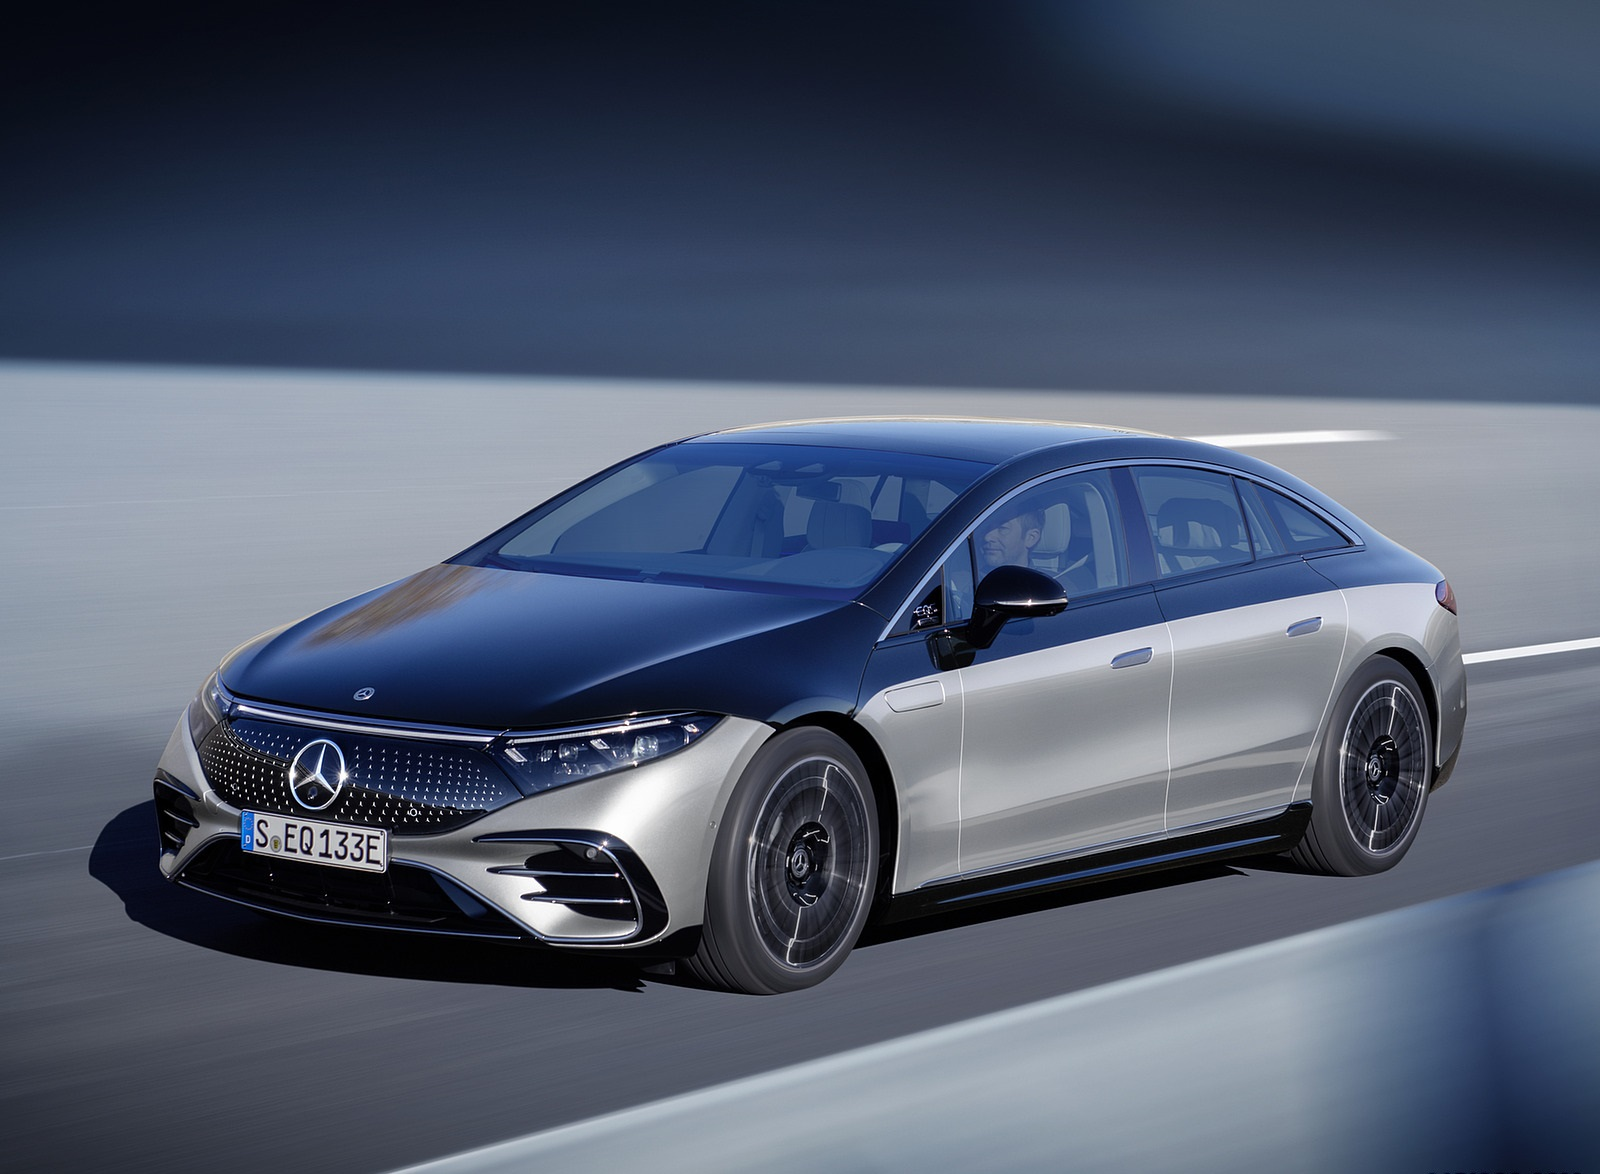 2022 Mercedes-Benz EQS 580 4MATIC AMG-Line Edition 1 (Color: High-Tech Silver Obsidian Black) Front Three-Quarter Wallpapers (8)